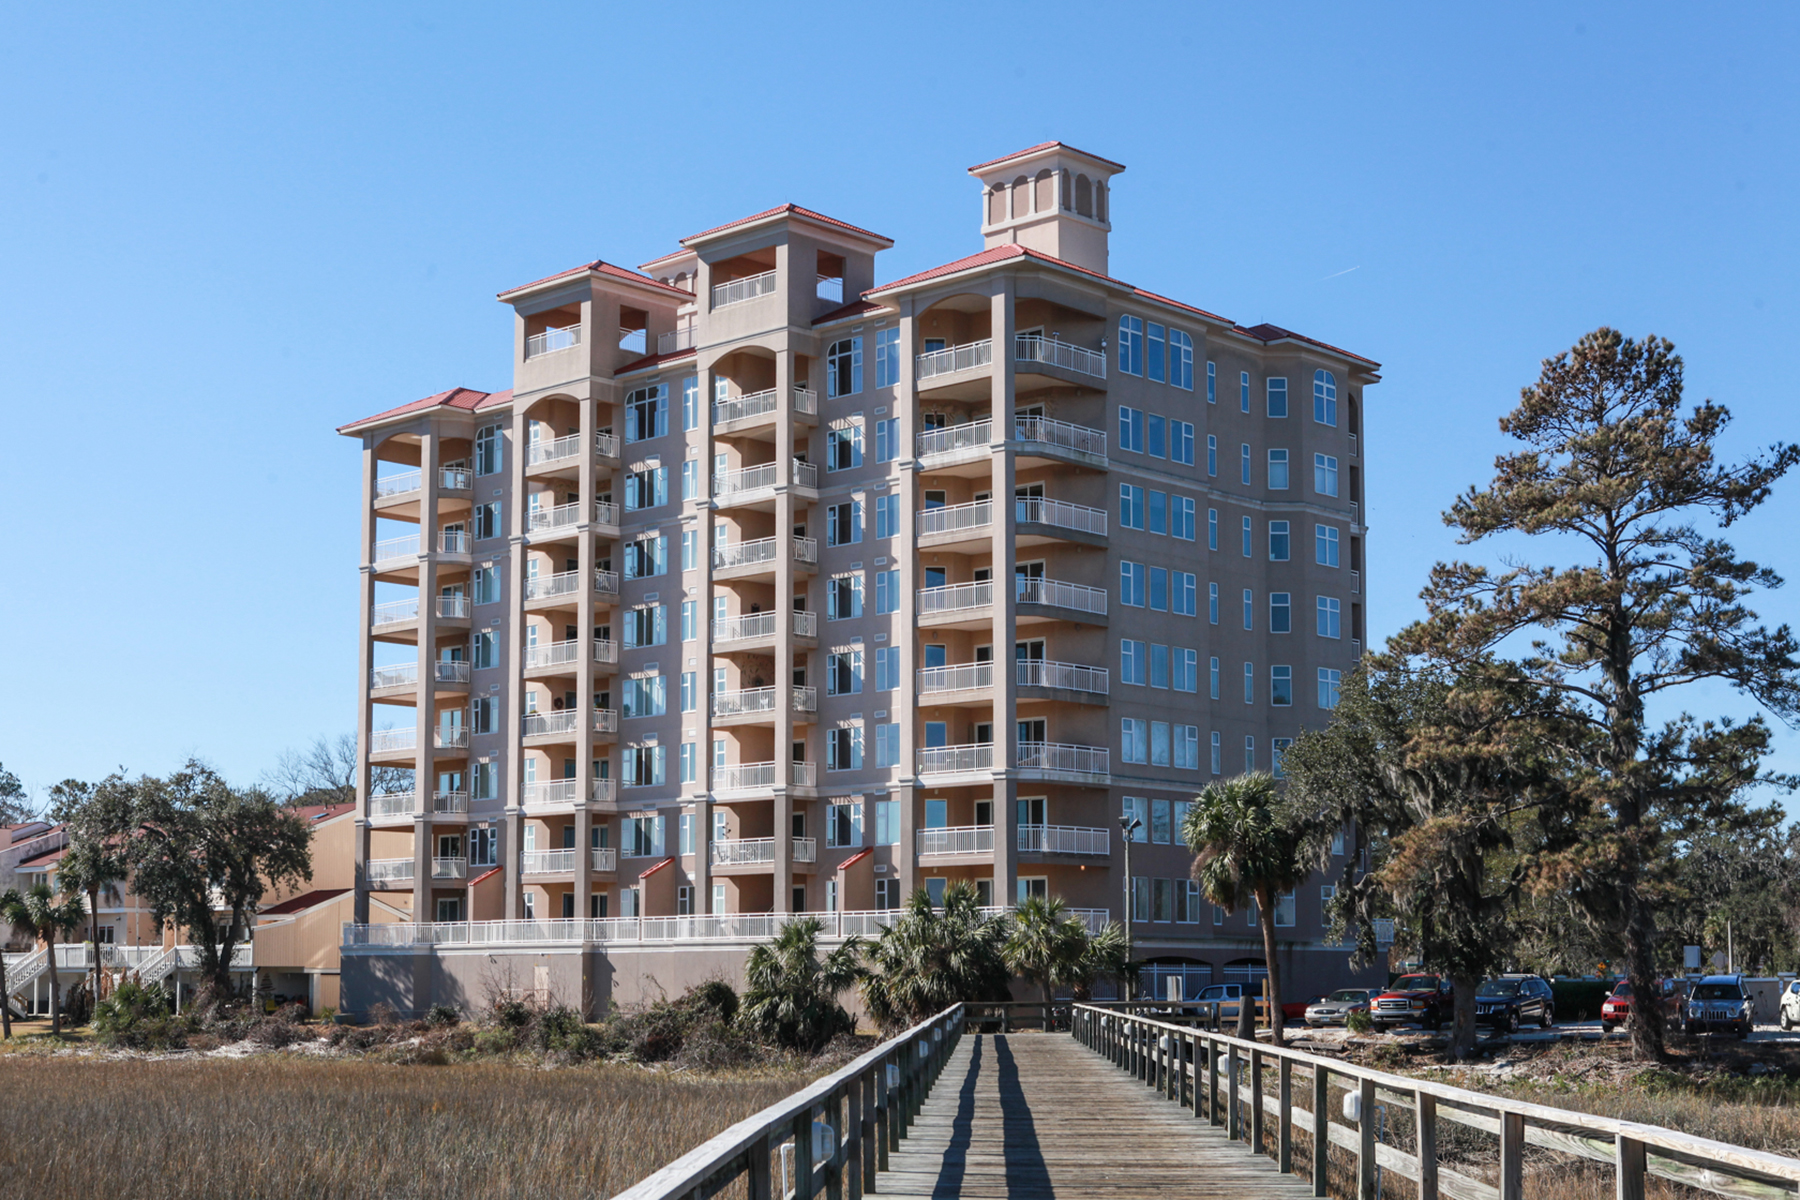 Condominium for Sale at 8001 US Highway 80 E. #501 8001 Old Tybee Road #501 Savannah, Georgia 31410 United States